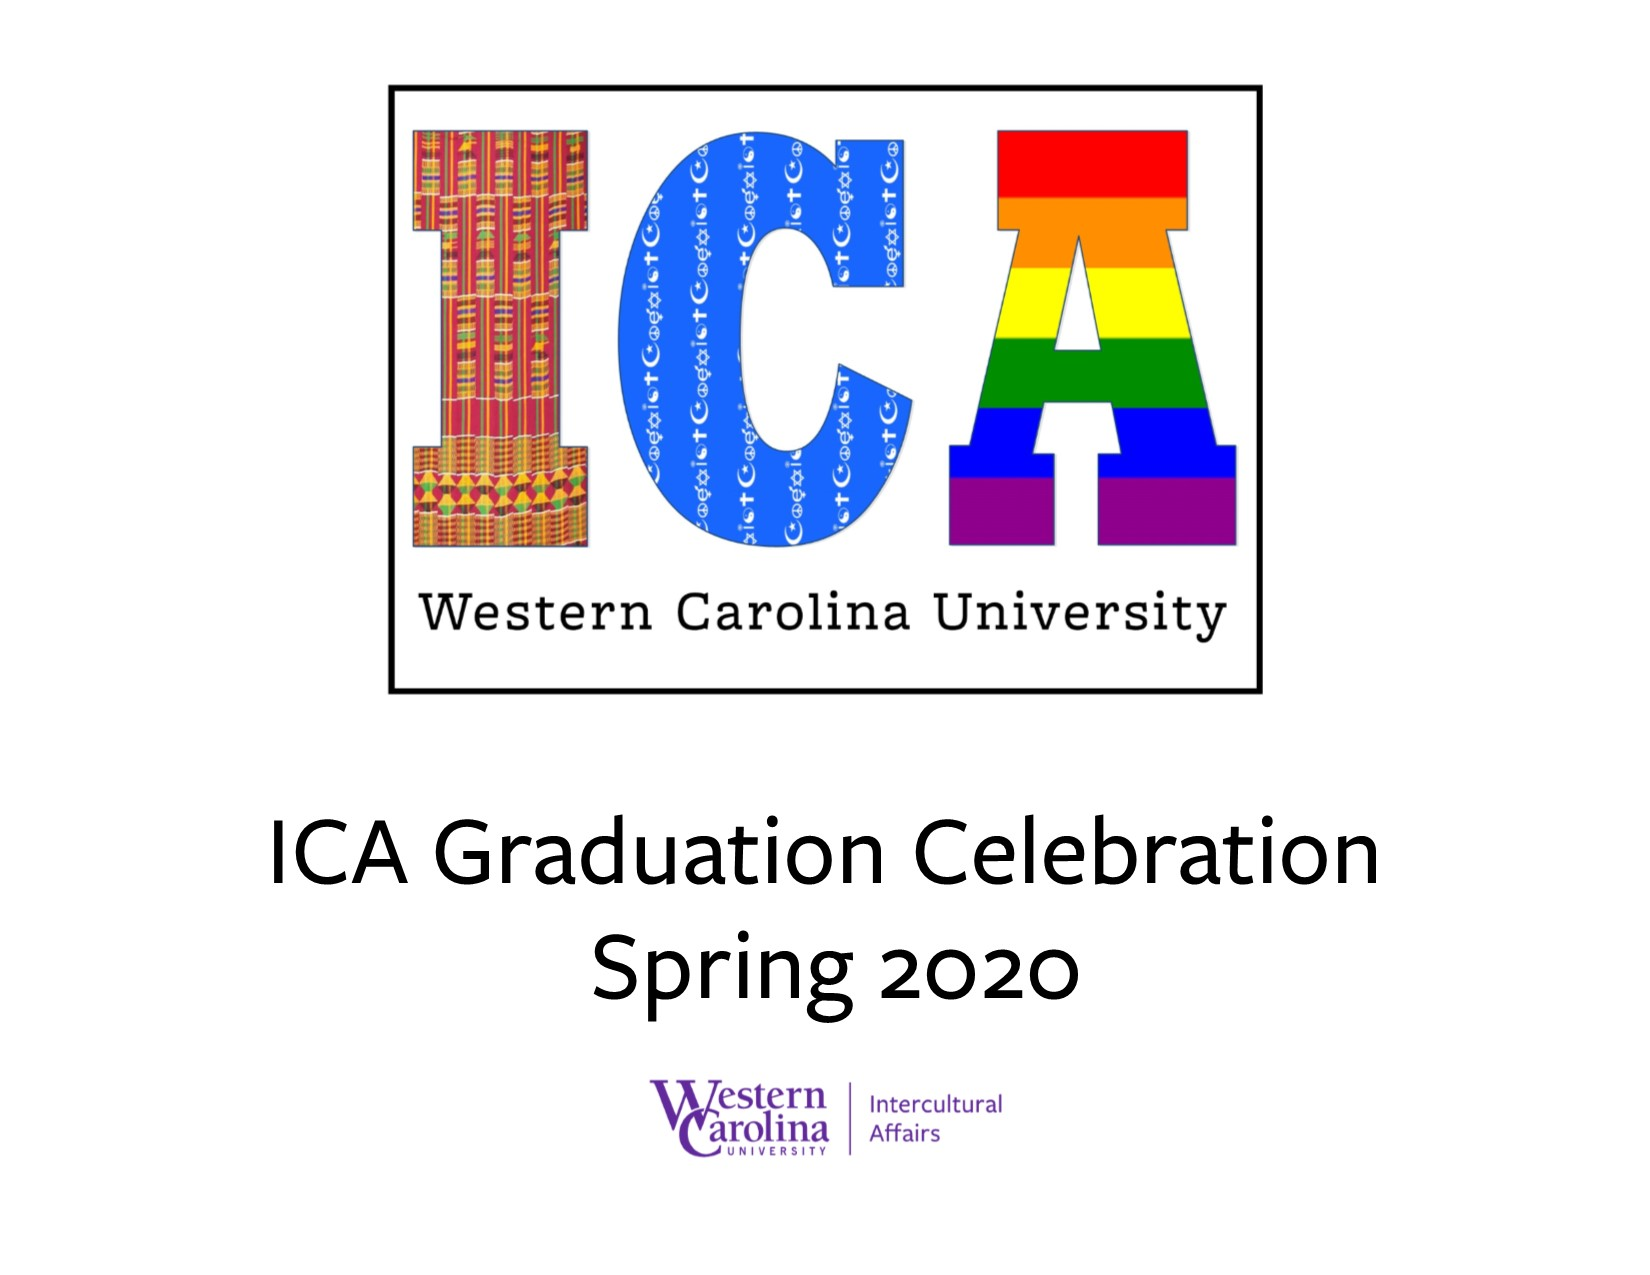 Photo of the cover of the Intercultural Affairs Spring 2020 Graduation Celebration Program